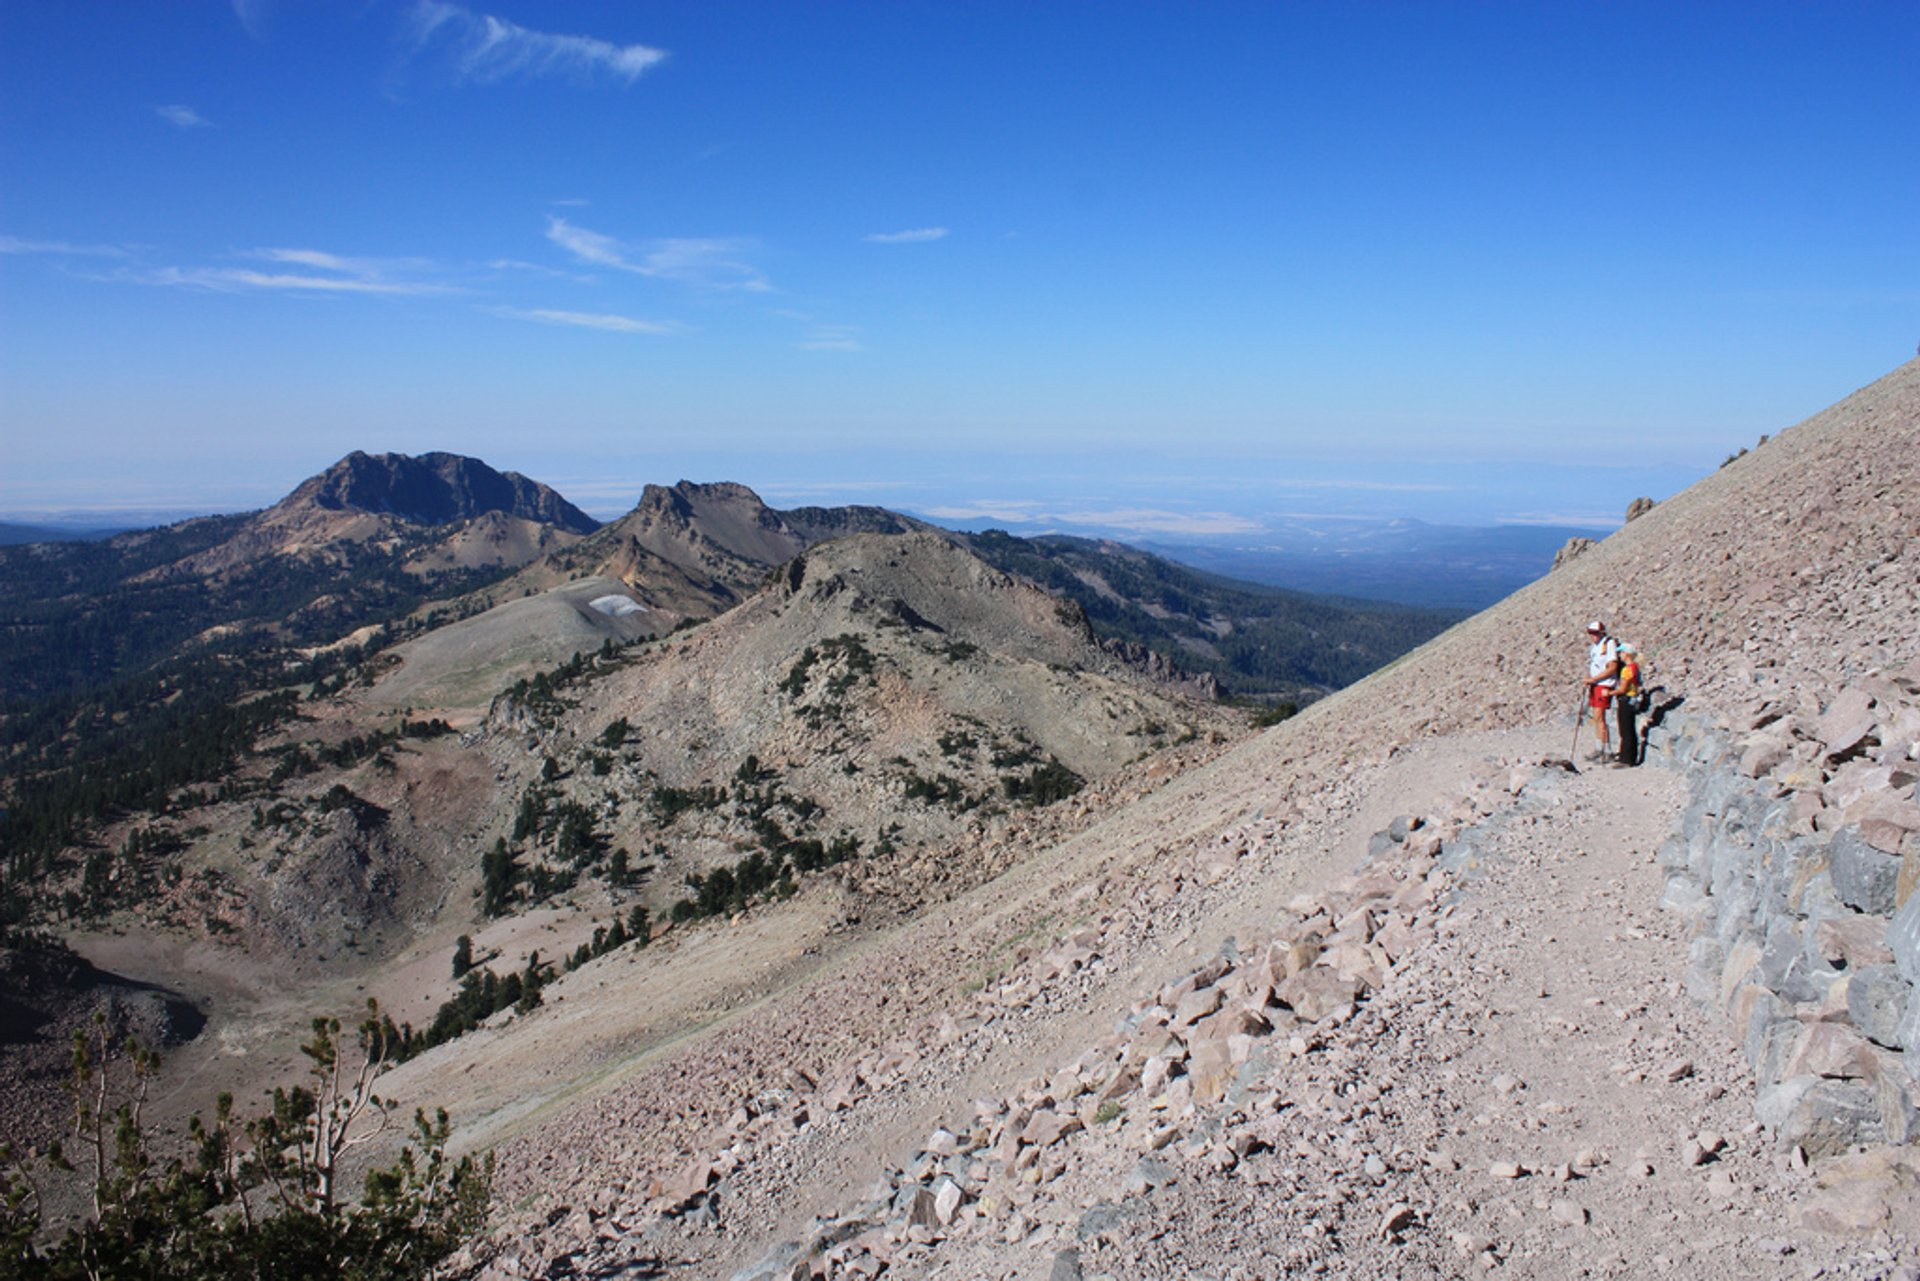 Hikers on Lassen Peak Trail, Lassen Volcanic National Park 2019